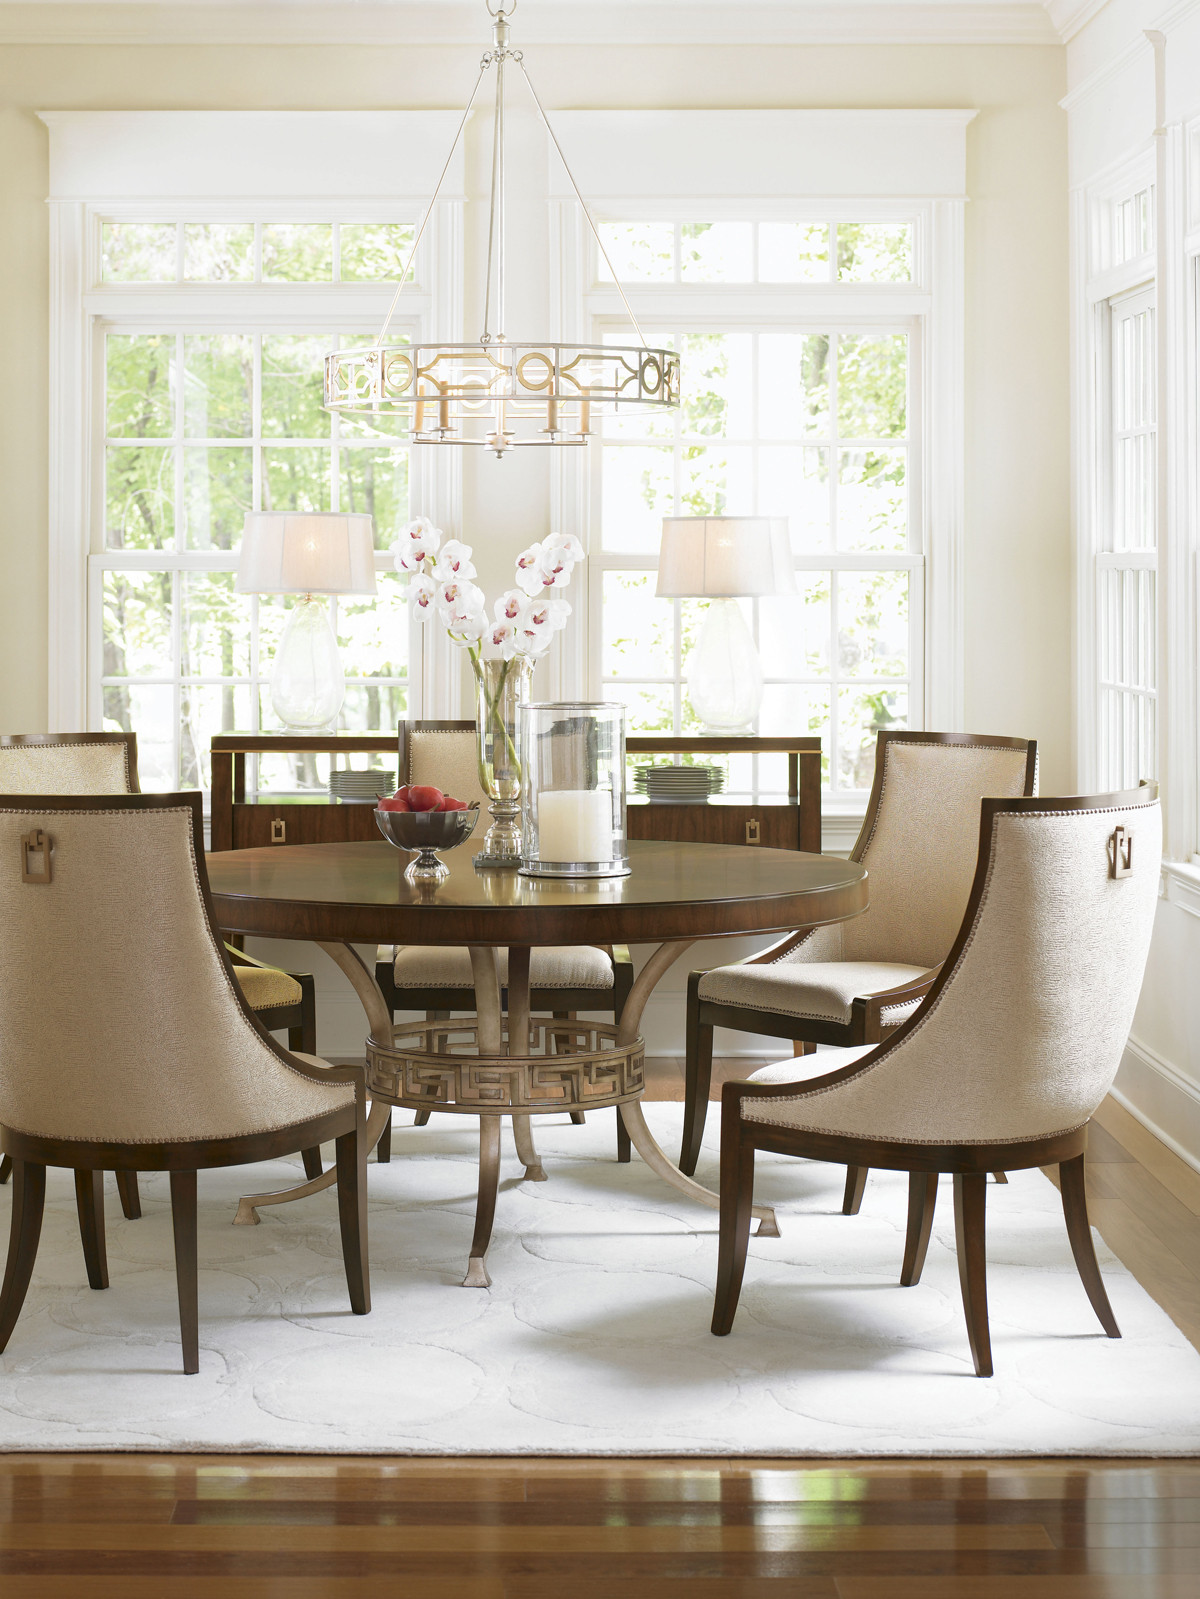 regis round dining table lexington home brands wood accent five below tower place homesense bar stools circular patio cover sterling and noble clock living room drawing mid